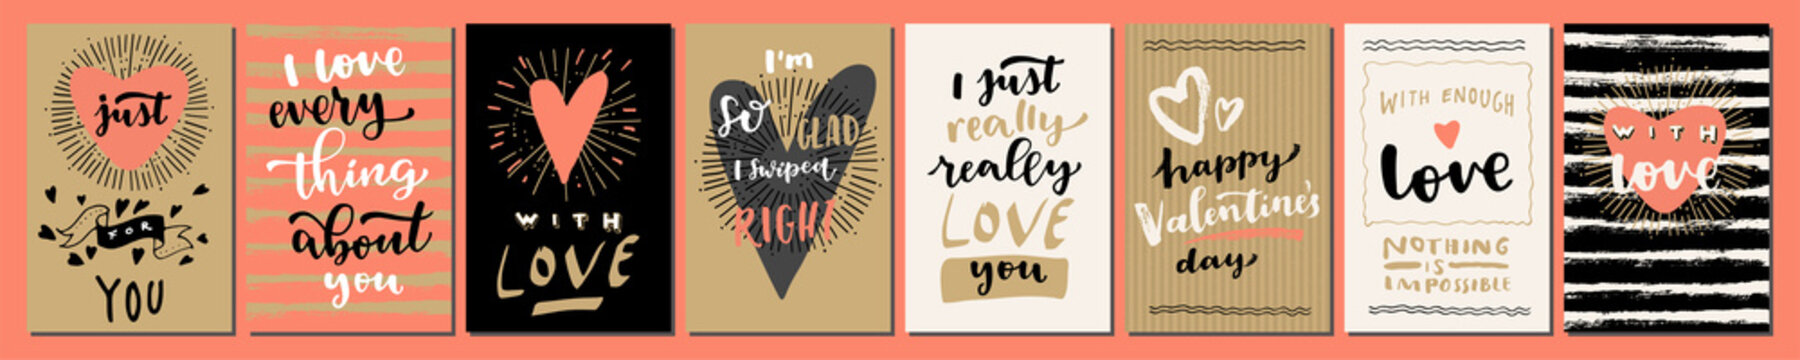 Valentine's Day Love hand lettered modern calligraphic cards